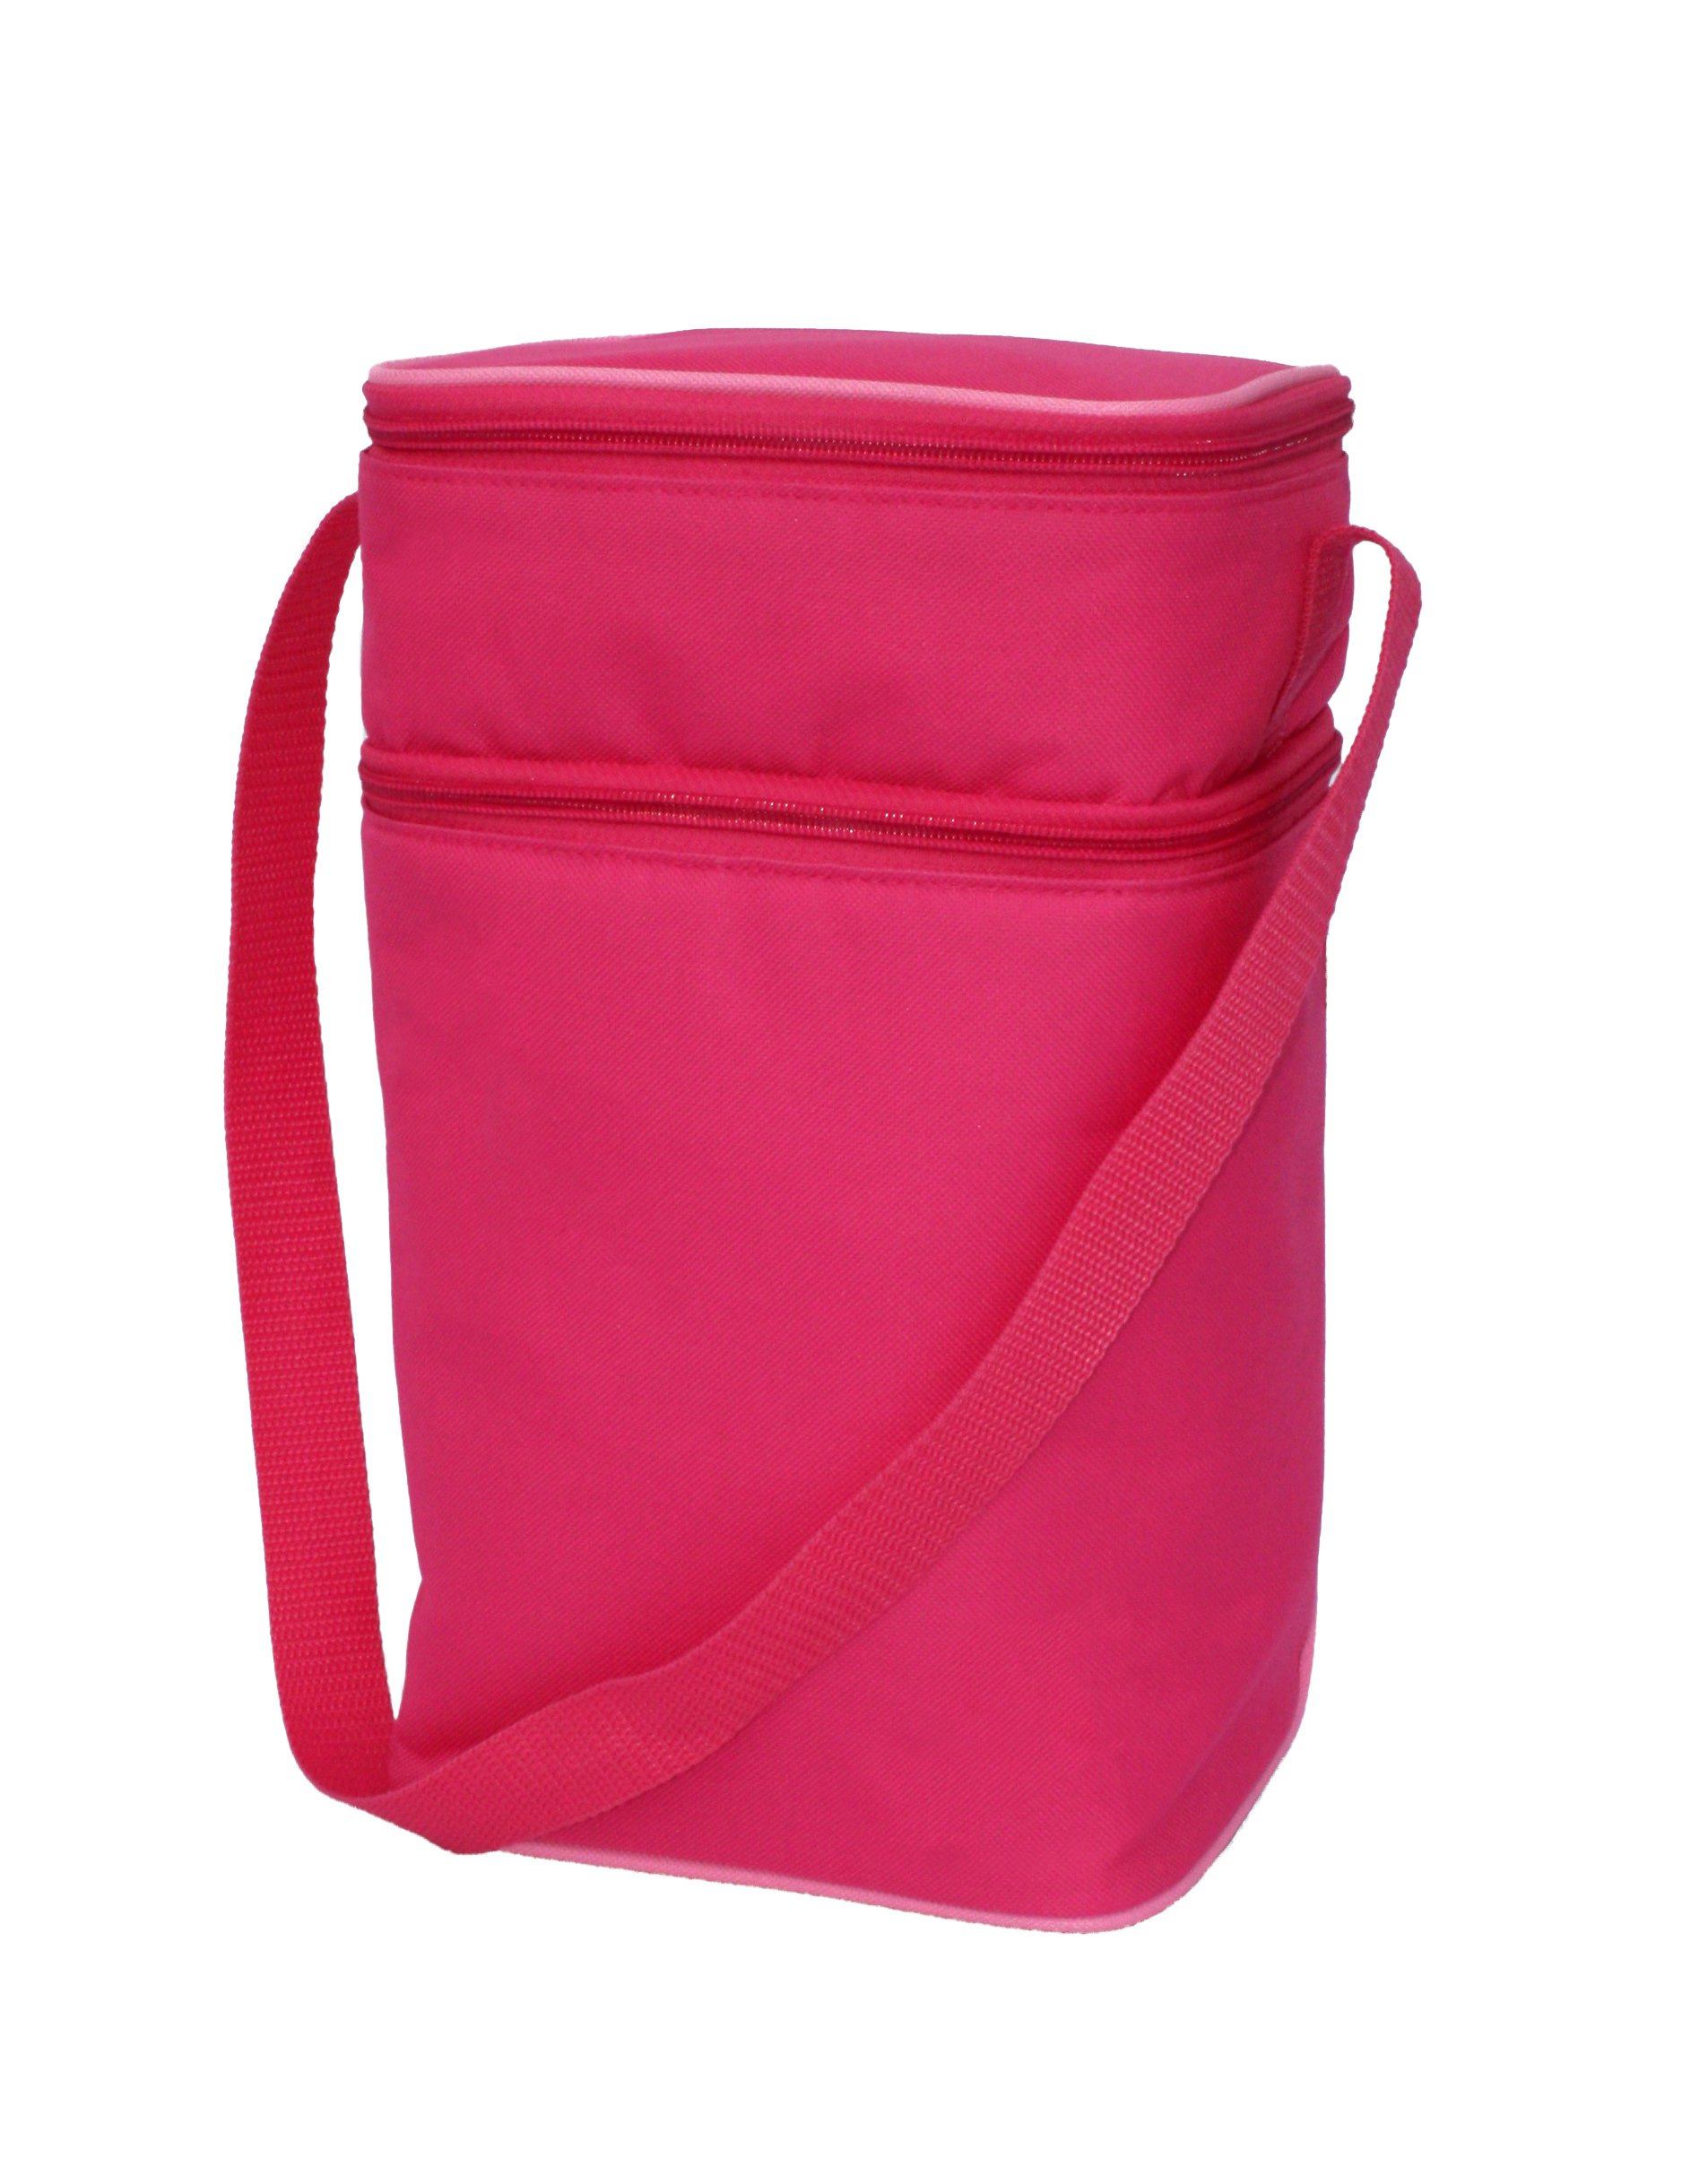 J.L. Childress 6 Bottle Cooler, Insulated Breastmilk Cooler & Lunch Bag for Baby Food & Bottles, Leak-Proof & Heat-Sealed, Ice Pack Included, Pink by J.L. Childress